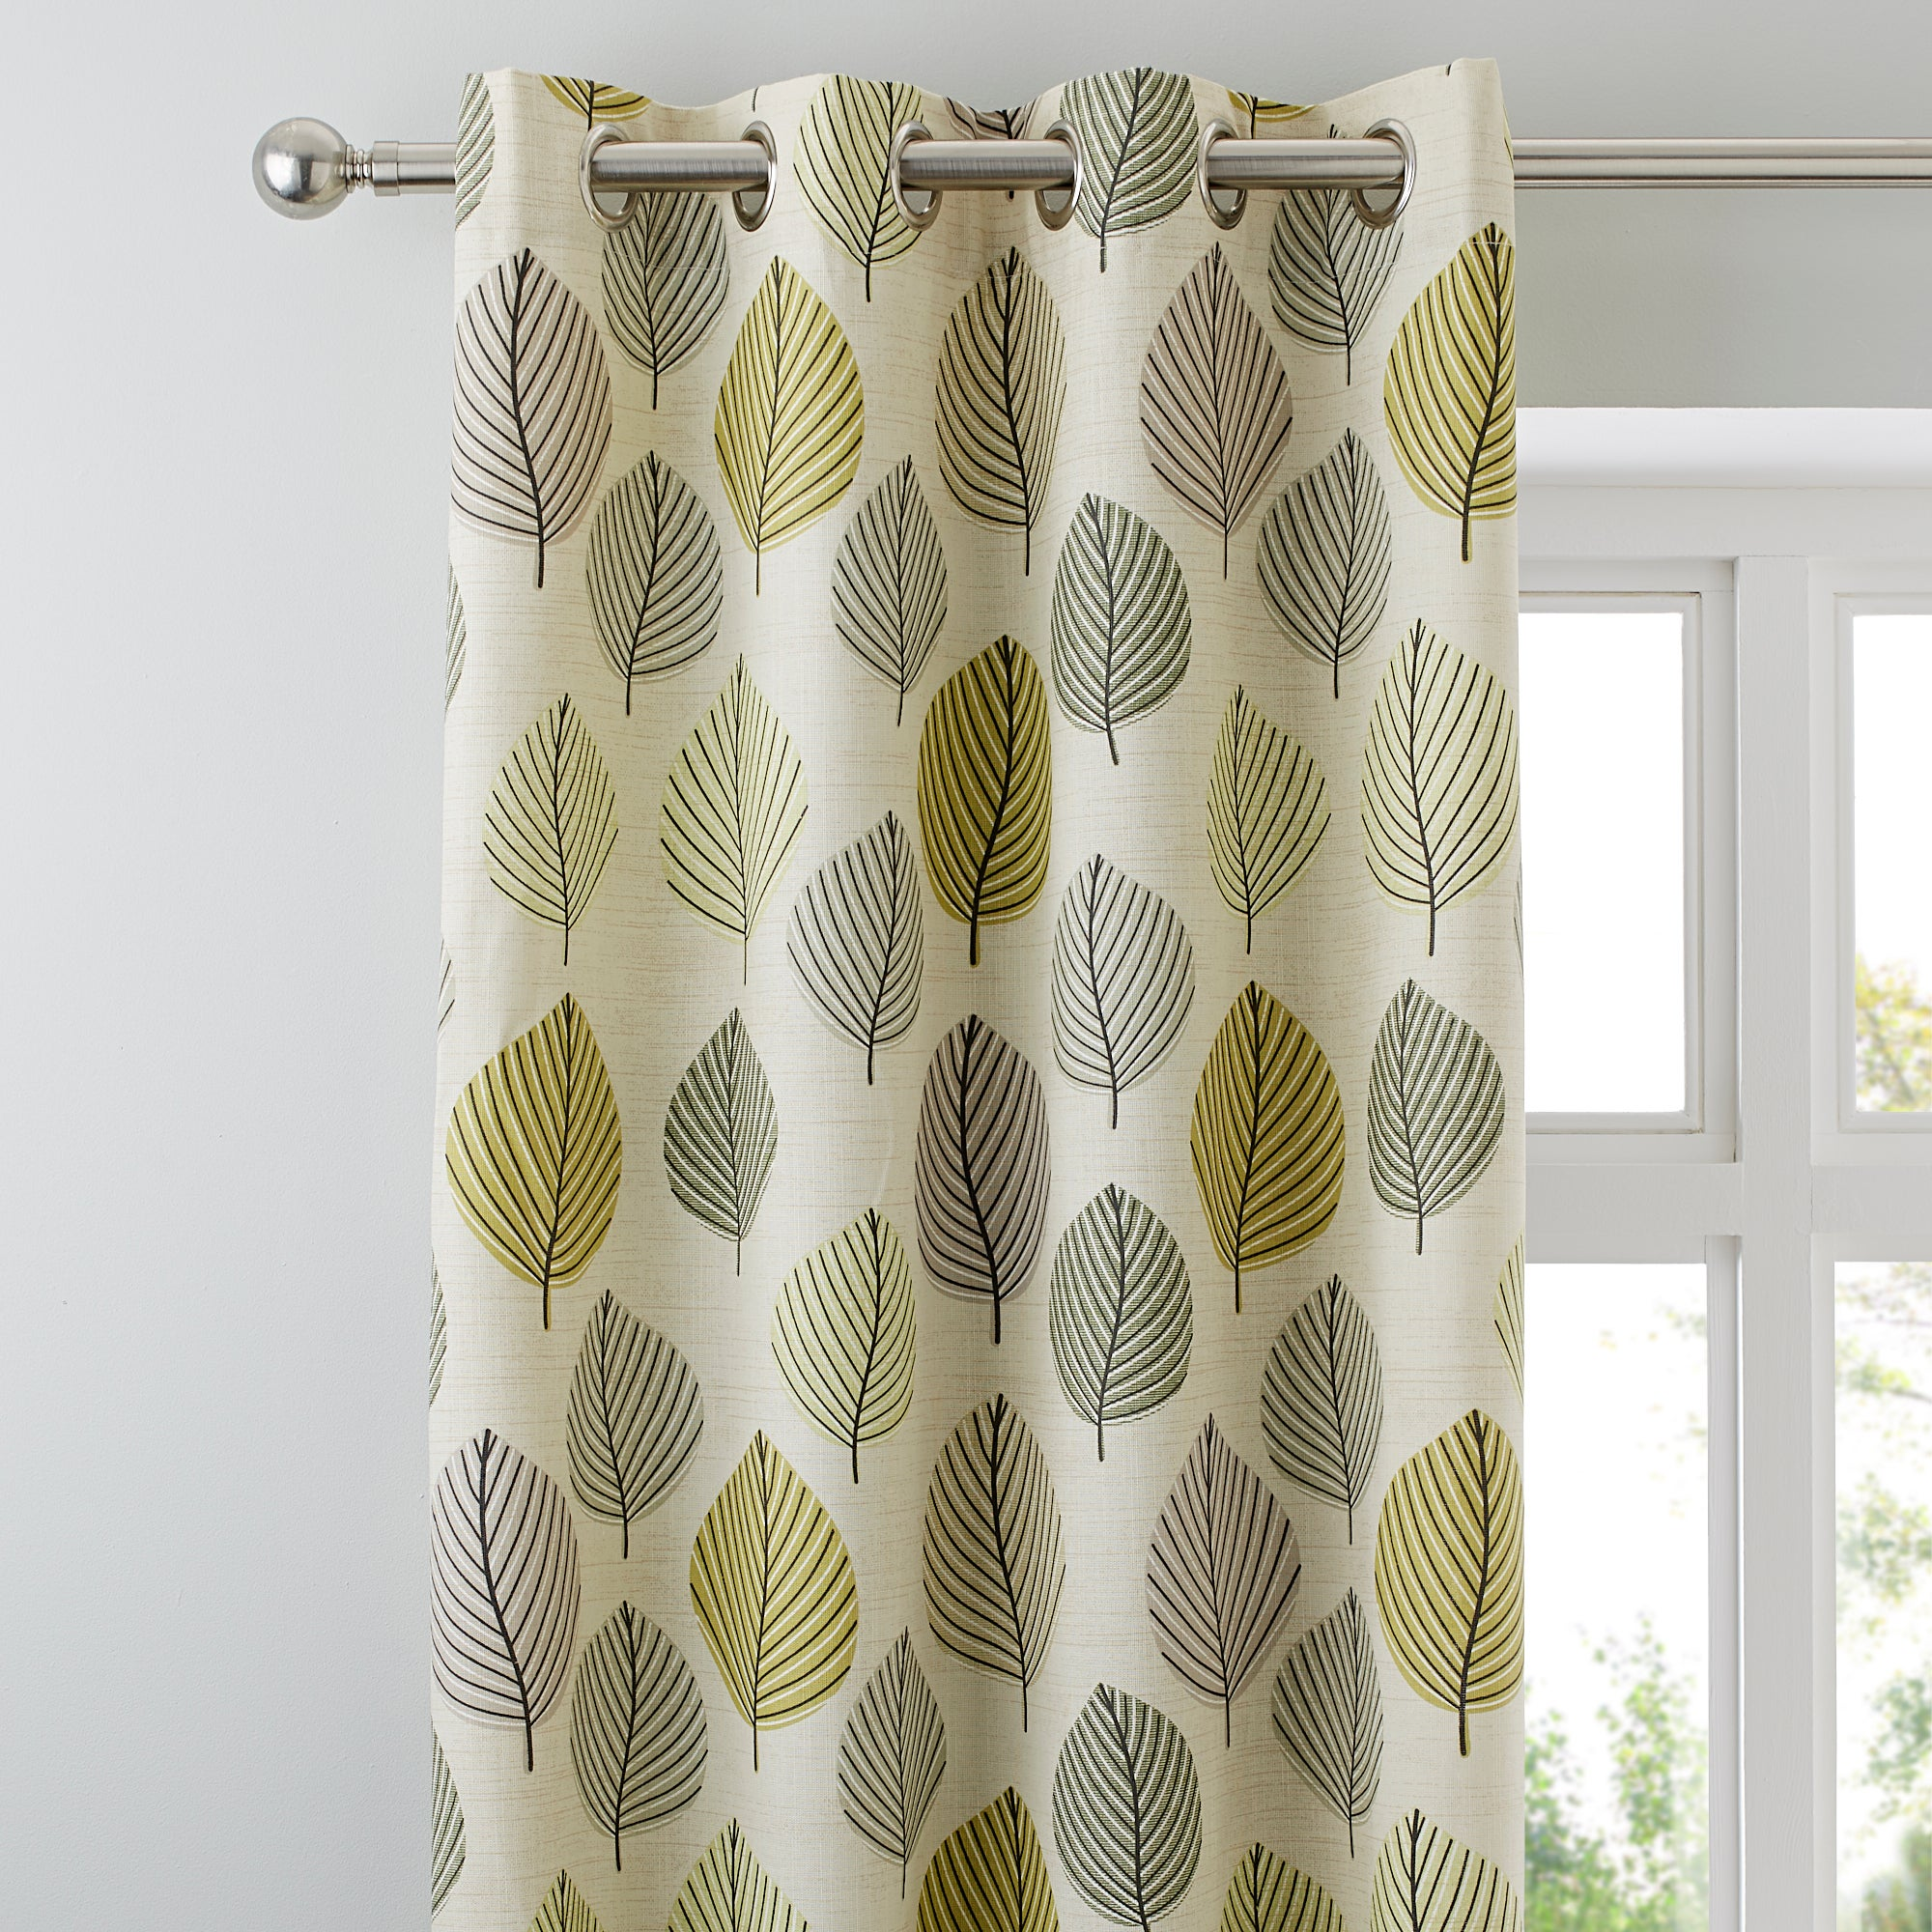 green eyelet curtains shop for cheap curtains blinds and save online. Black Bedroom Furniture Sets. Home Design Ideas